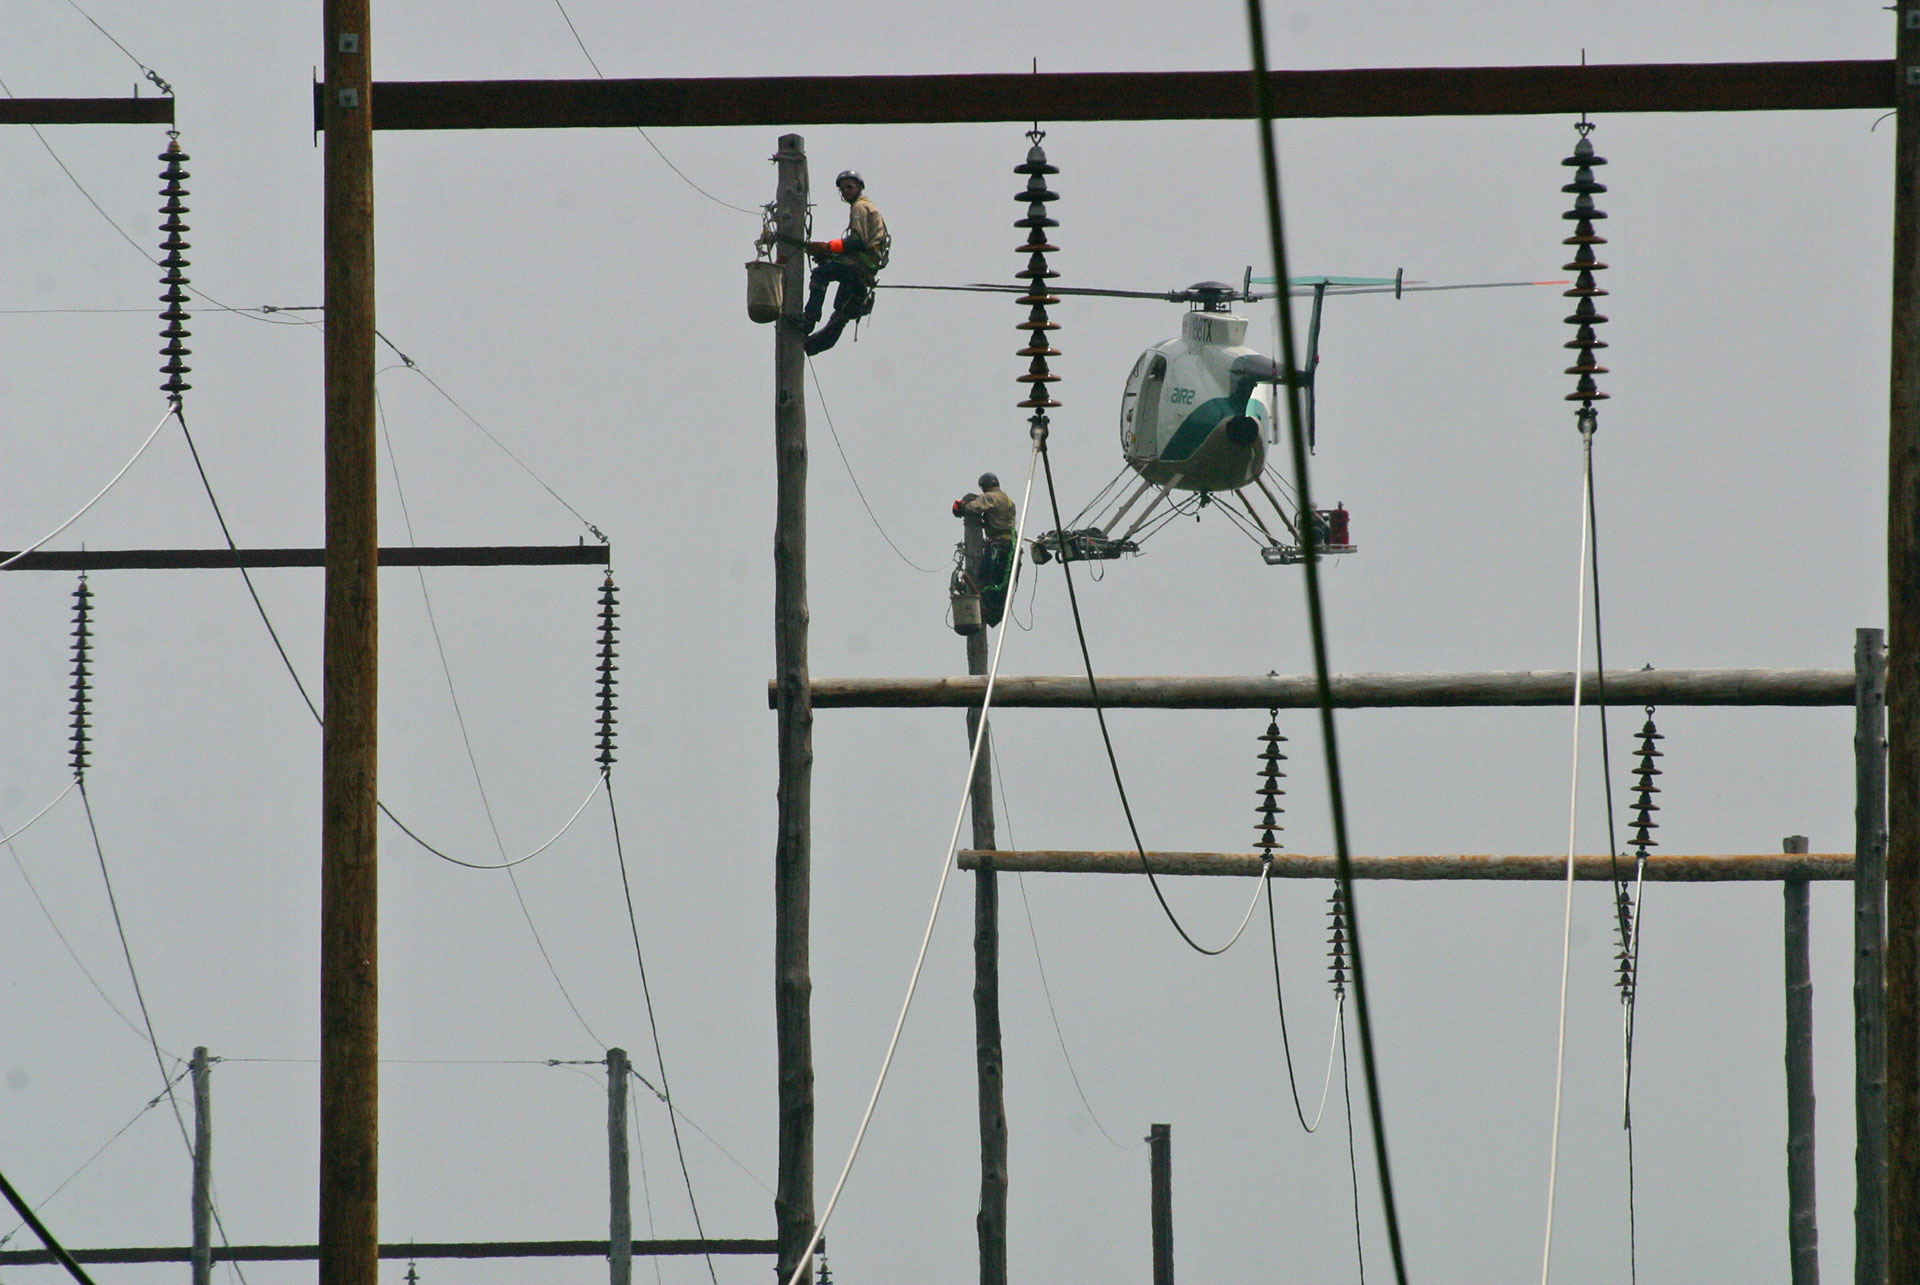 Slide 4 – Transmission Line Maintenance